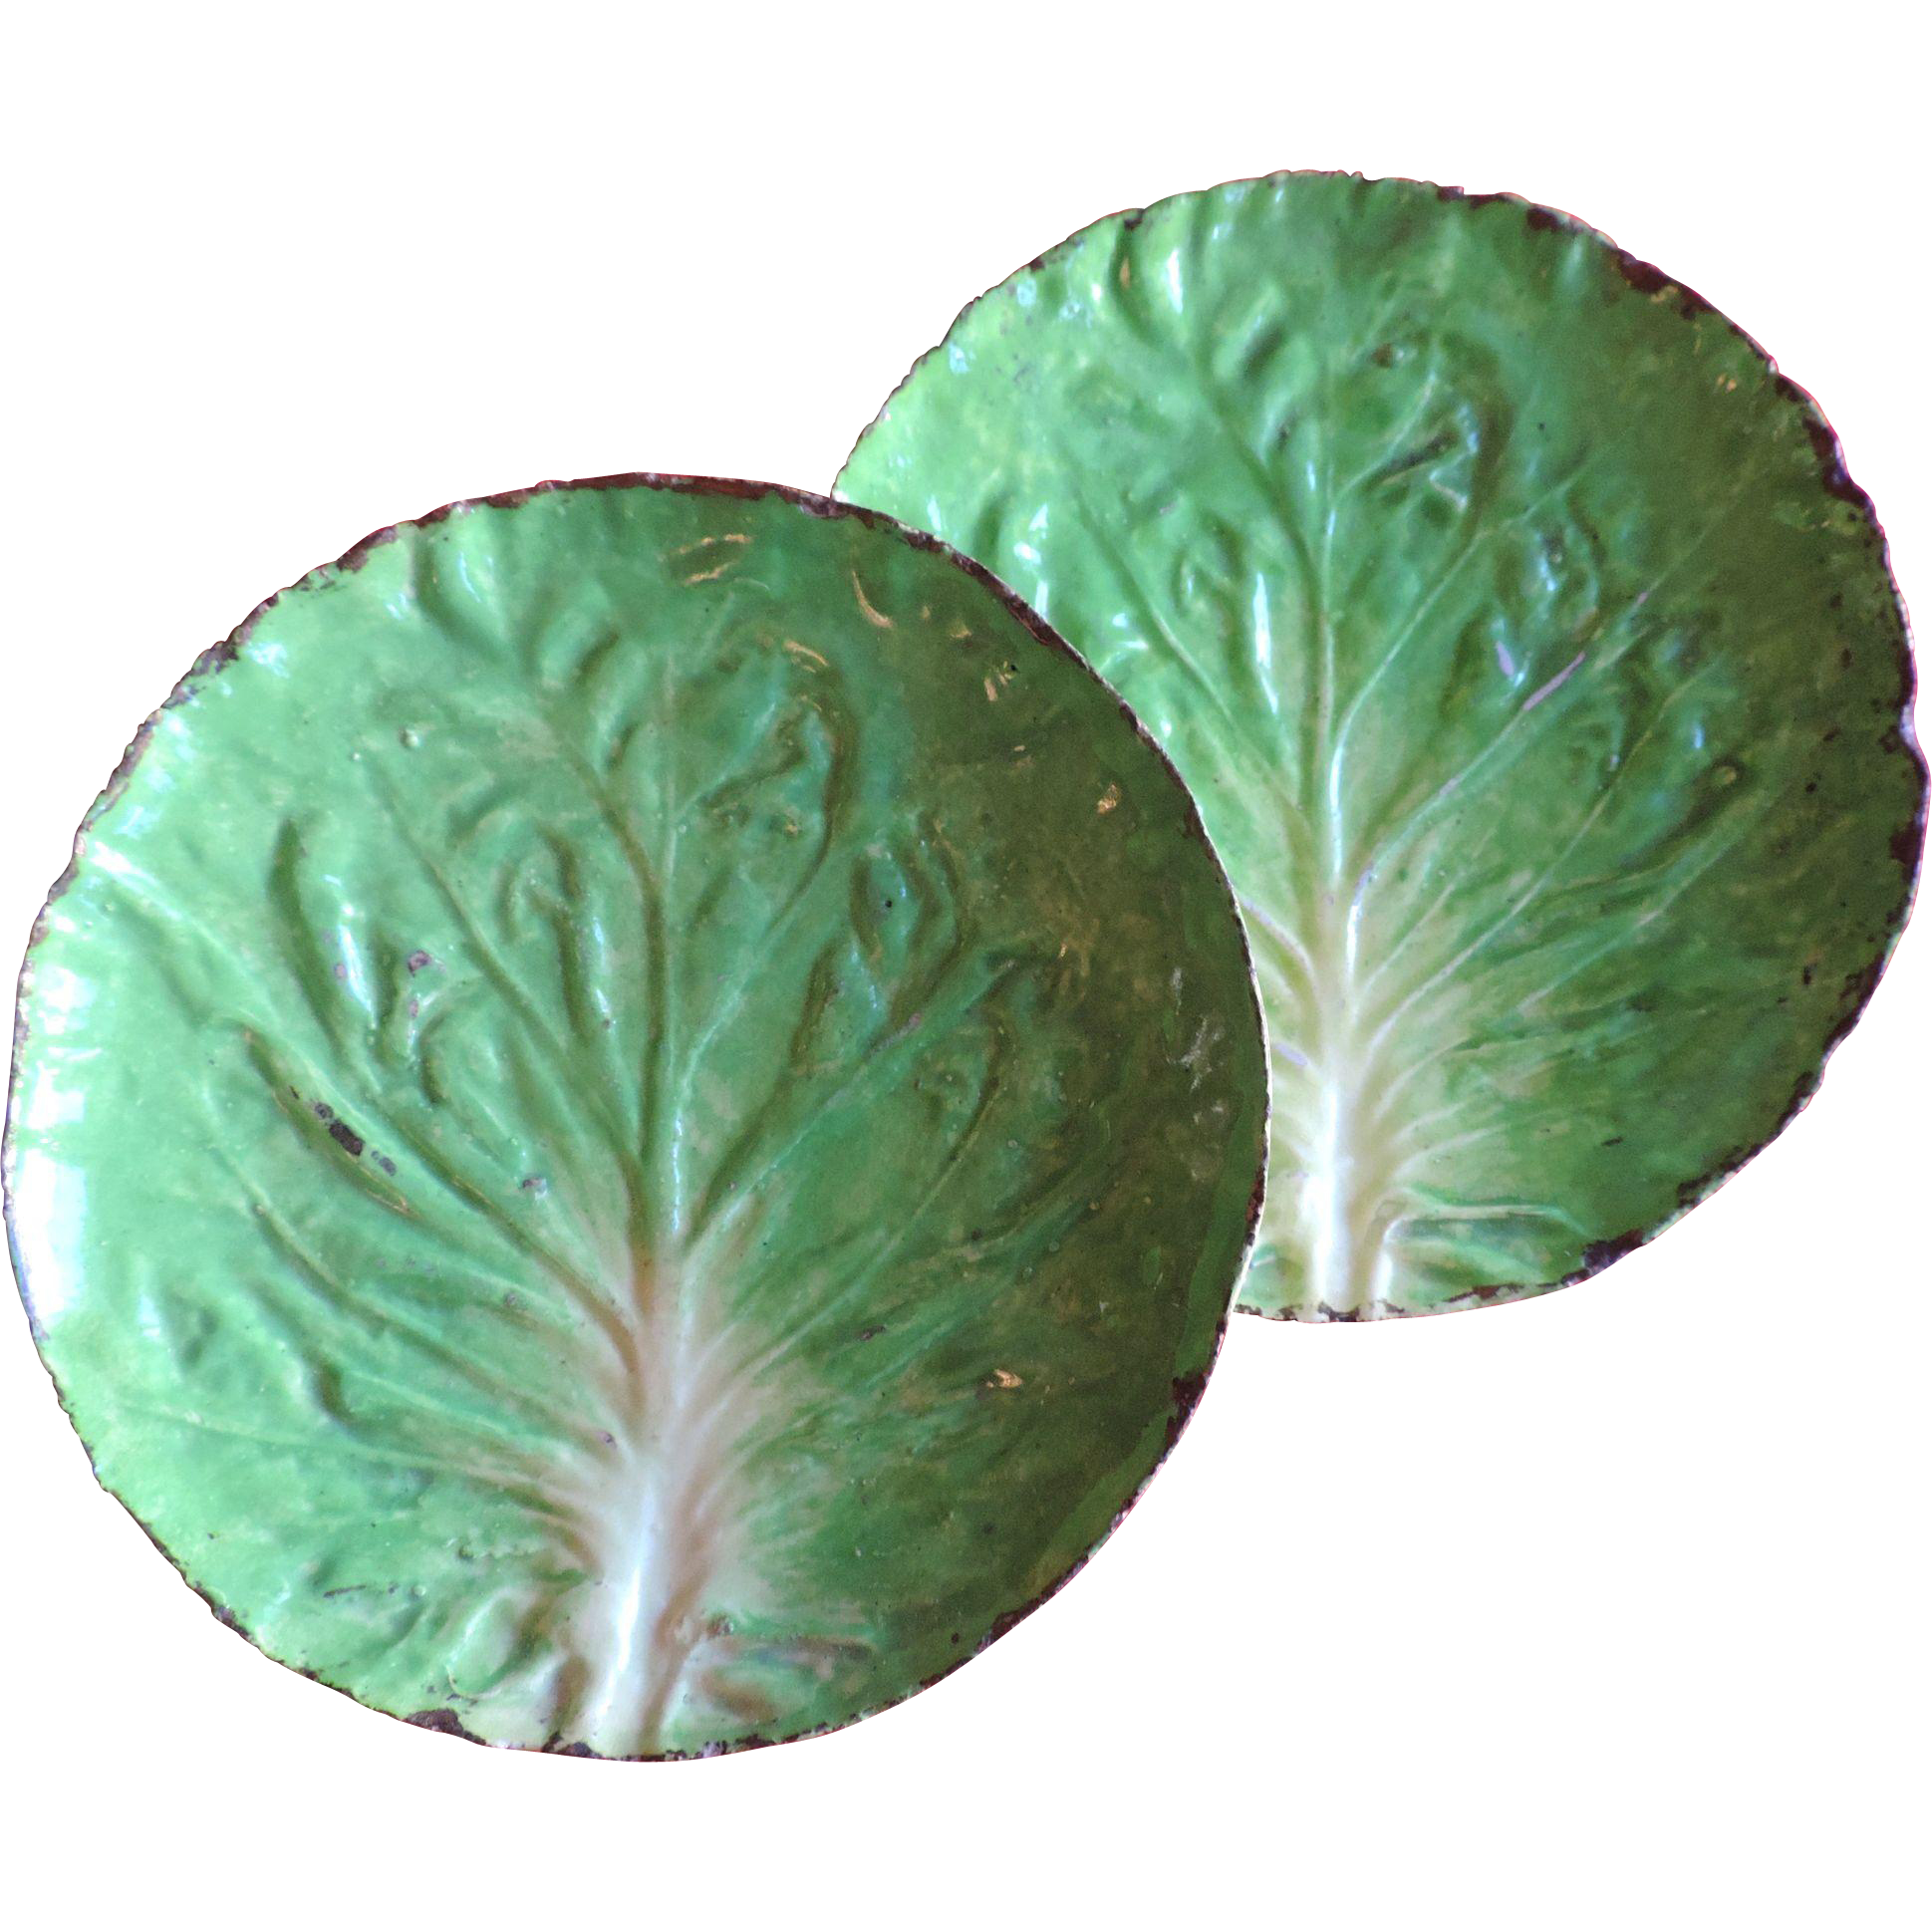 Lettuce leaf plates clipart images gallery for free download.